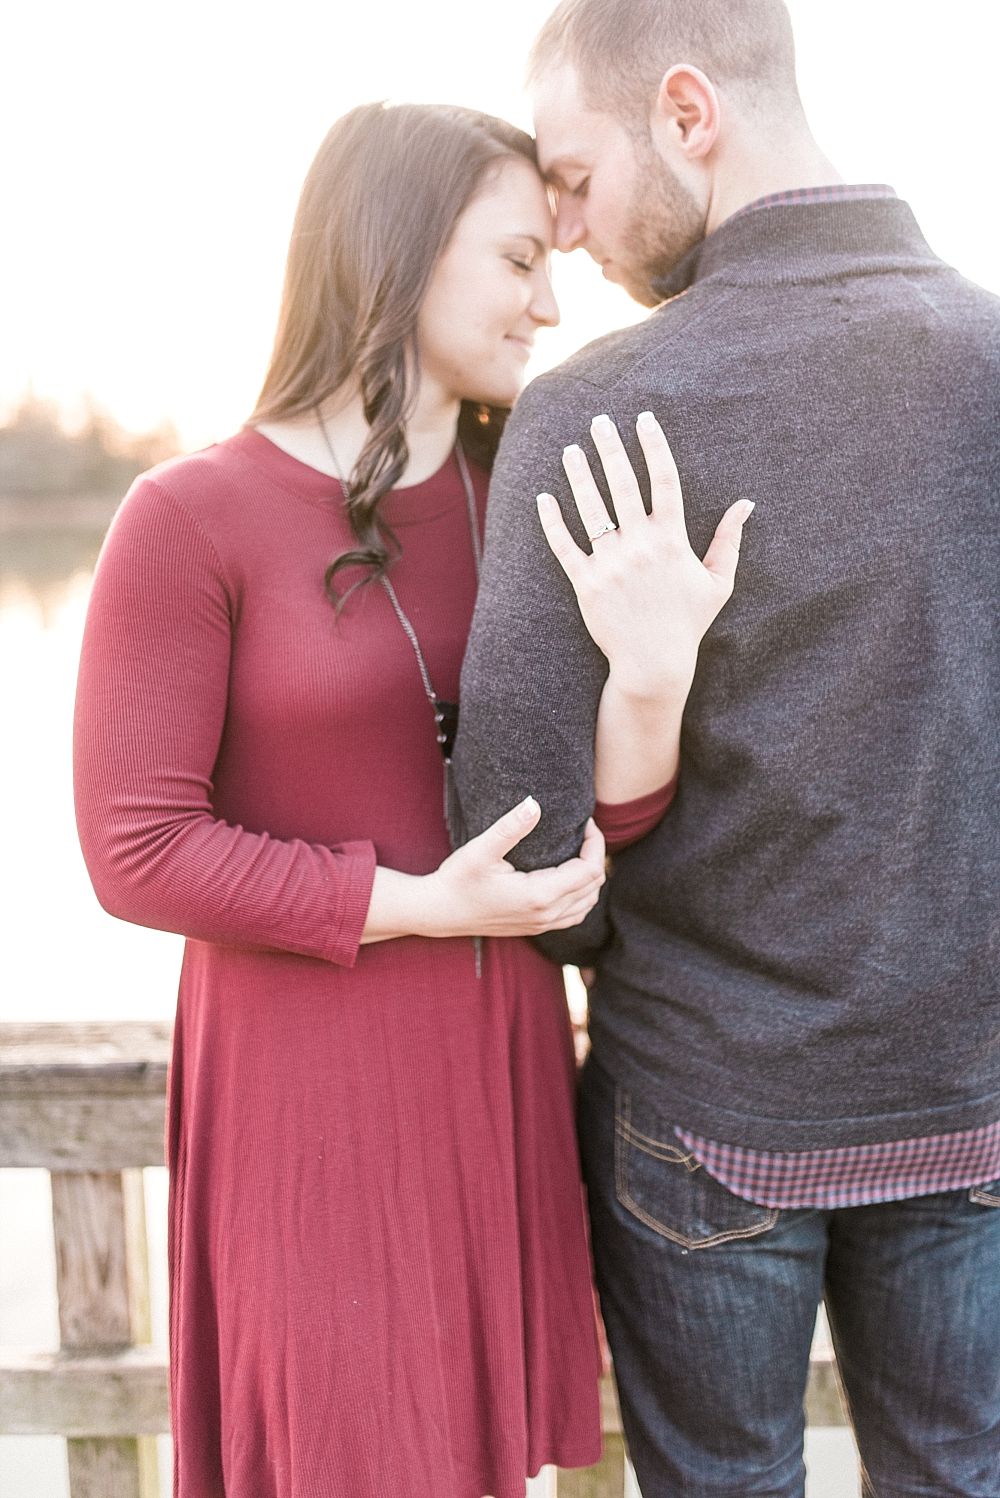 JuicebeatsPhotography_KnoxvilleEngagement_Kristina&Ben_0027.jpg